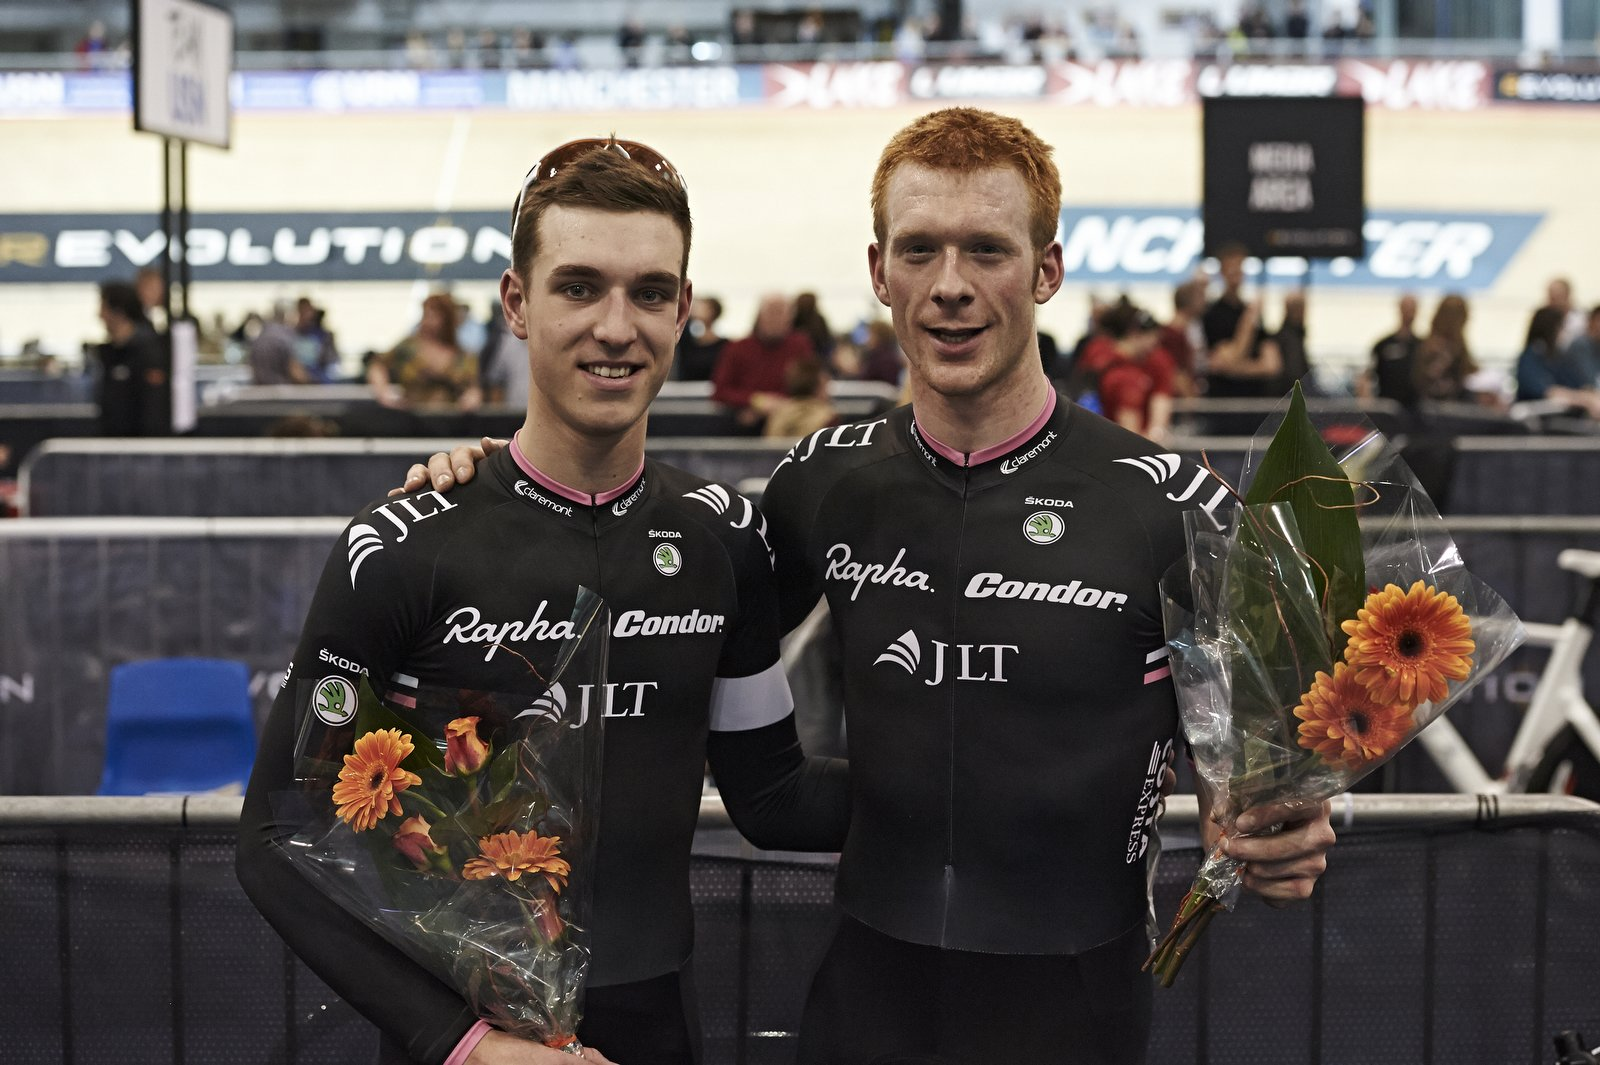 Ollie Wood and Ed Clancy were on world record breaking form in Manchester ©Revolution Series